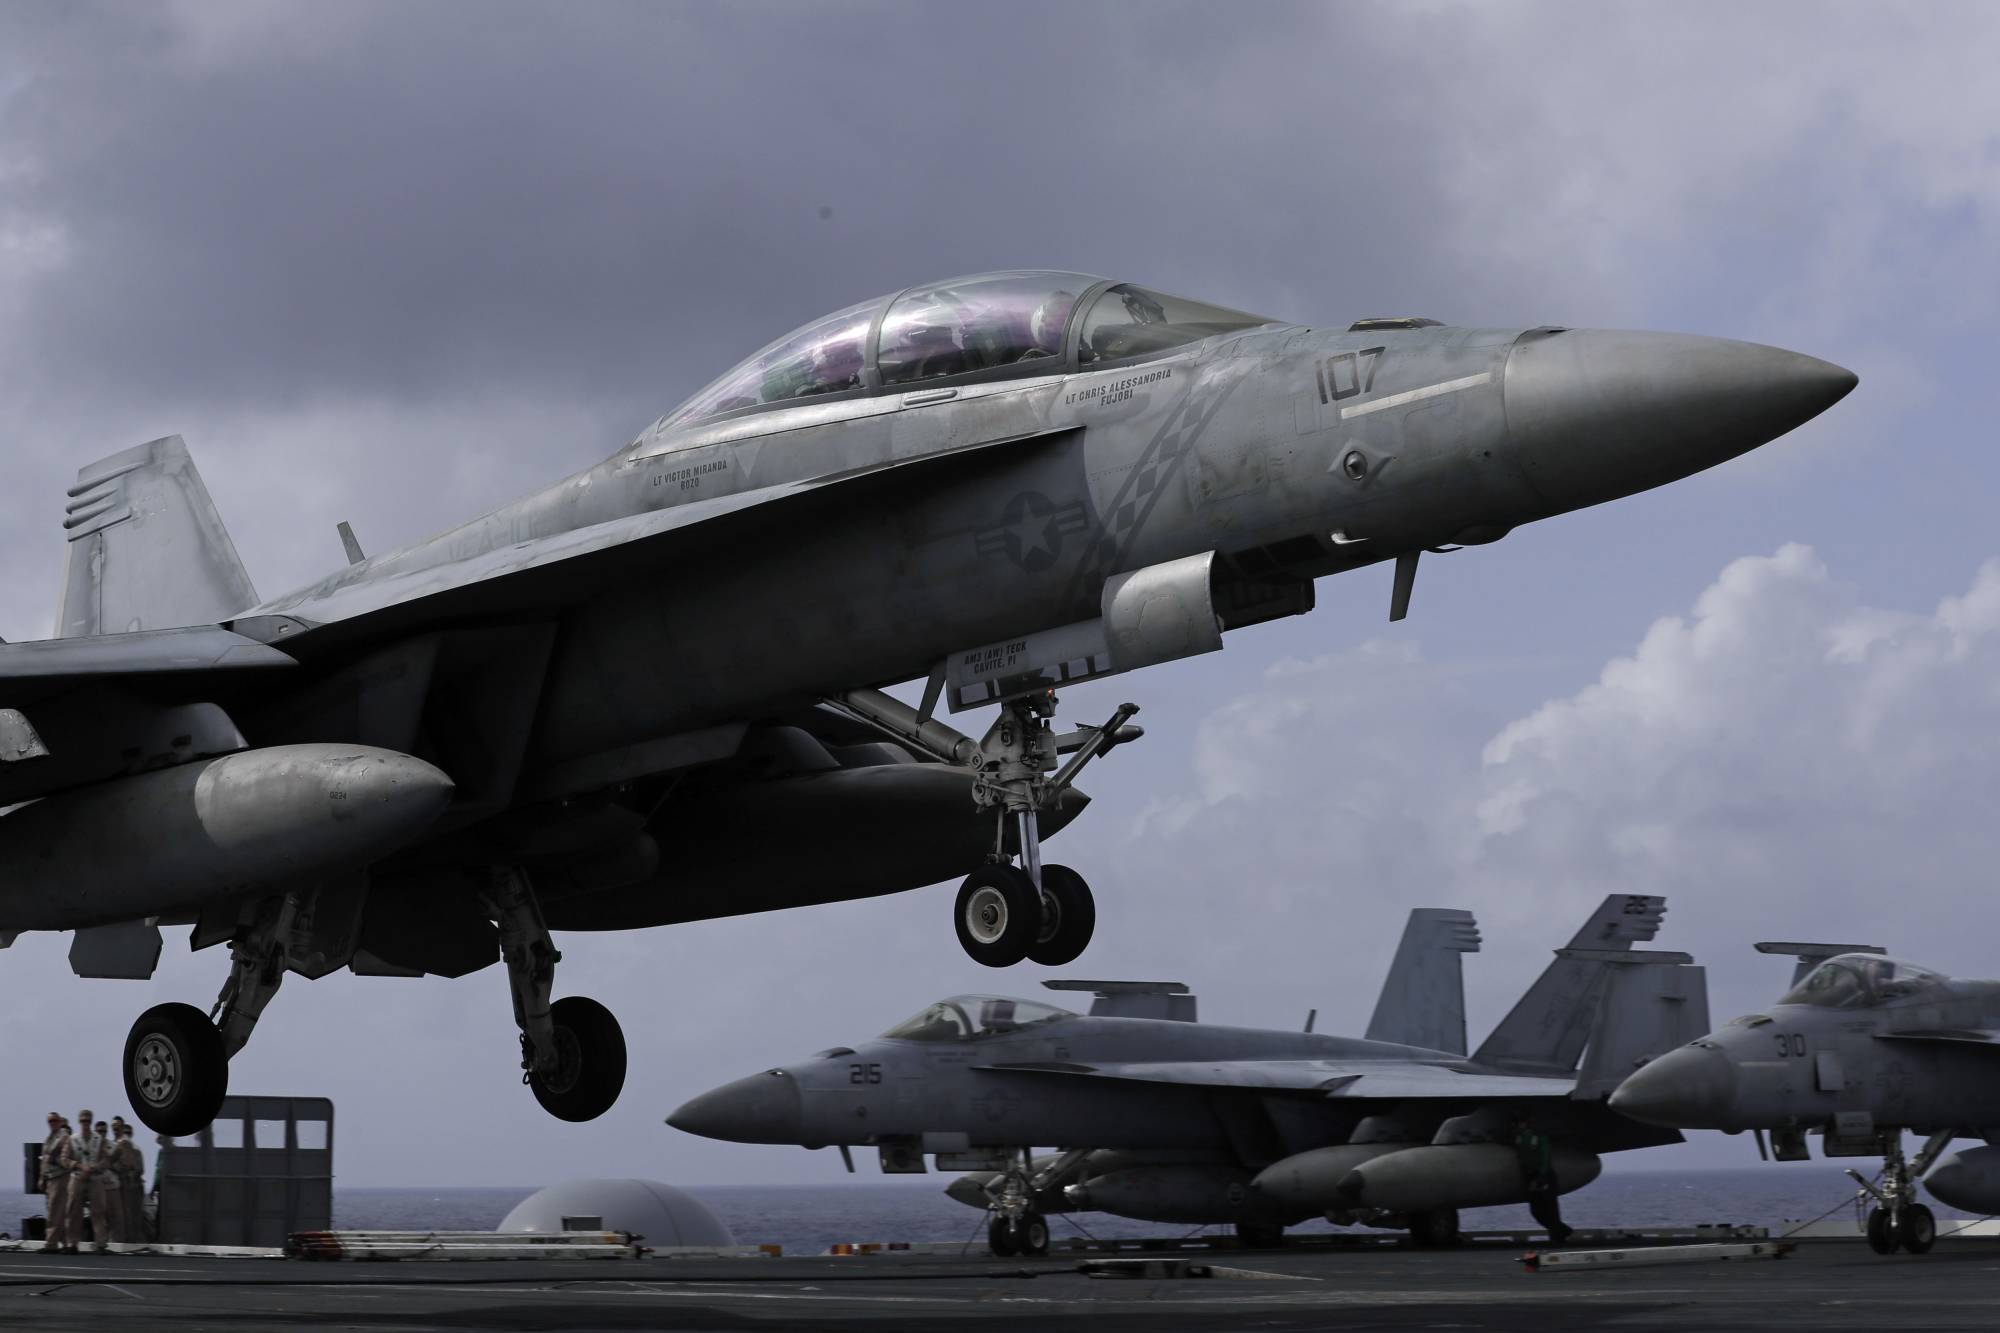 An F/A-18 Super Hornet fighter jet lands on the deck of the U.S. Navy USS Ronald Reagan in the South China Sea, Tuesday, Nov. 20, 2018. China is allowing a U.S. Navy aircraft carrier and its battle group to make a port call in Hong Kong after it earlier turned down a similar request amid tensions with Washington. (AP Photo/Kin Cheung)